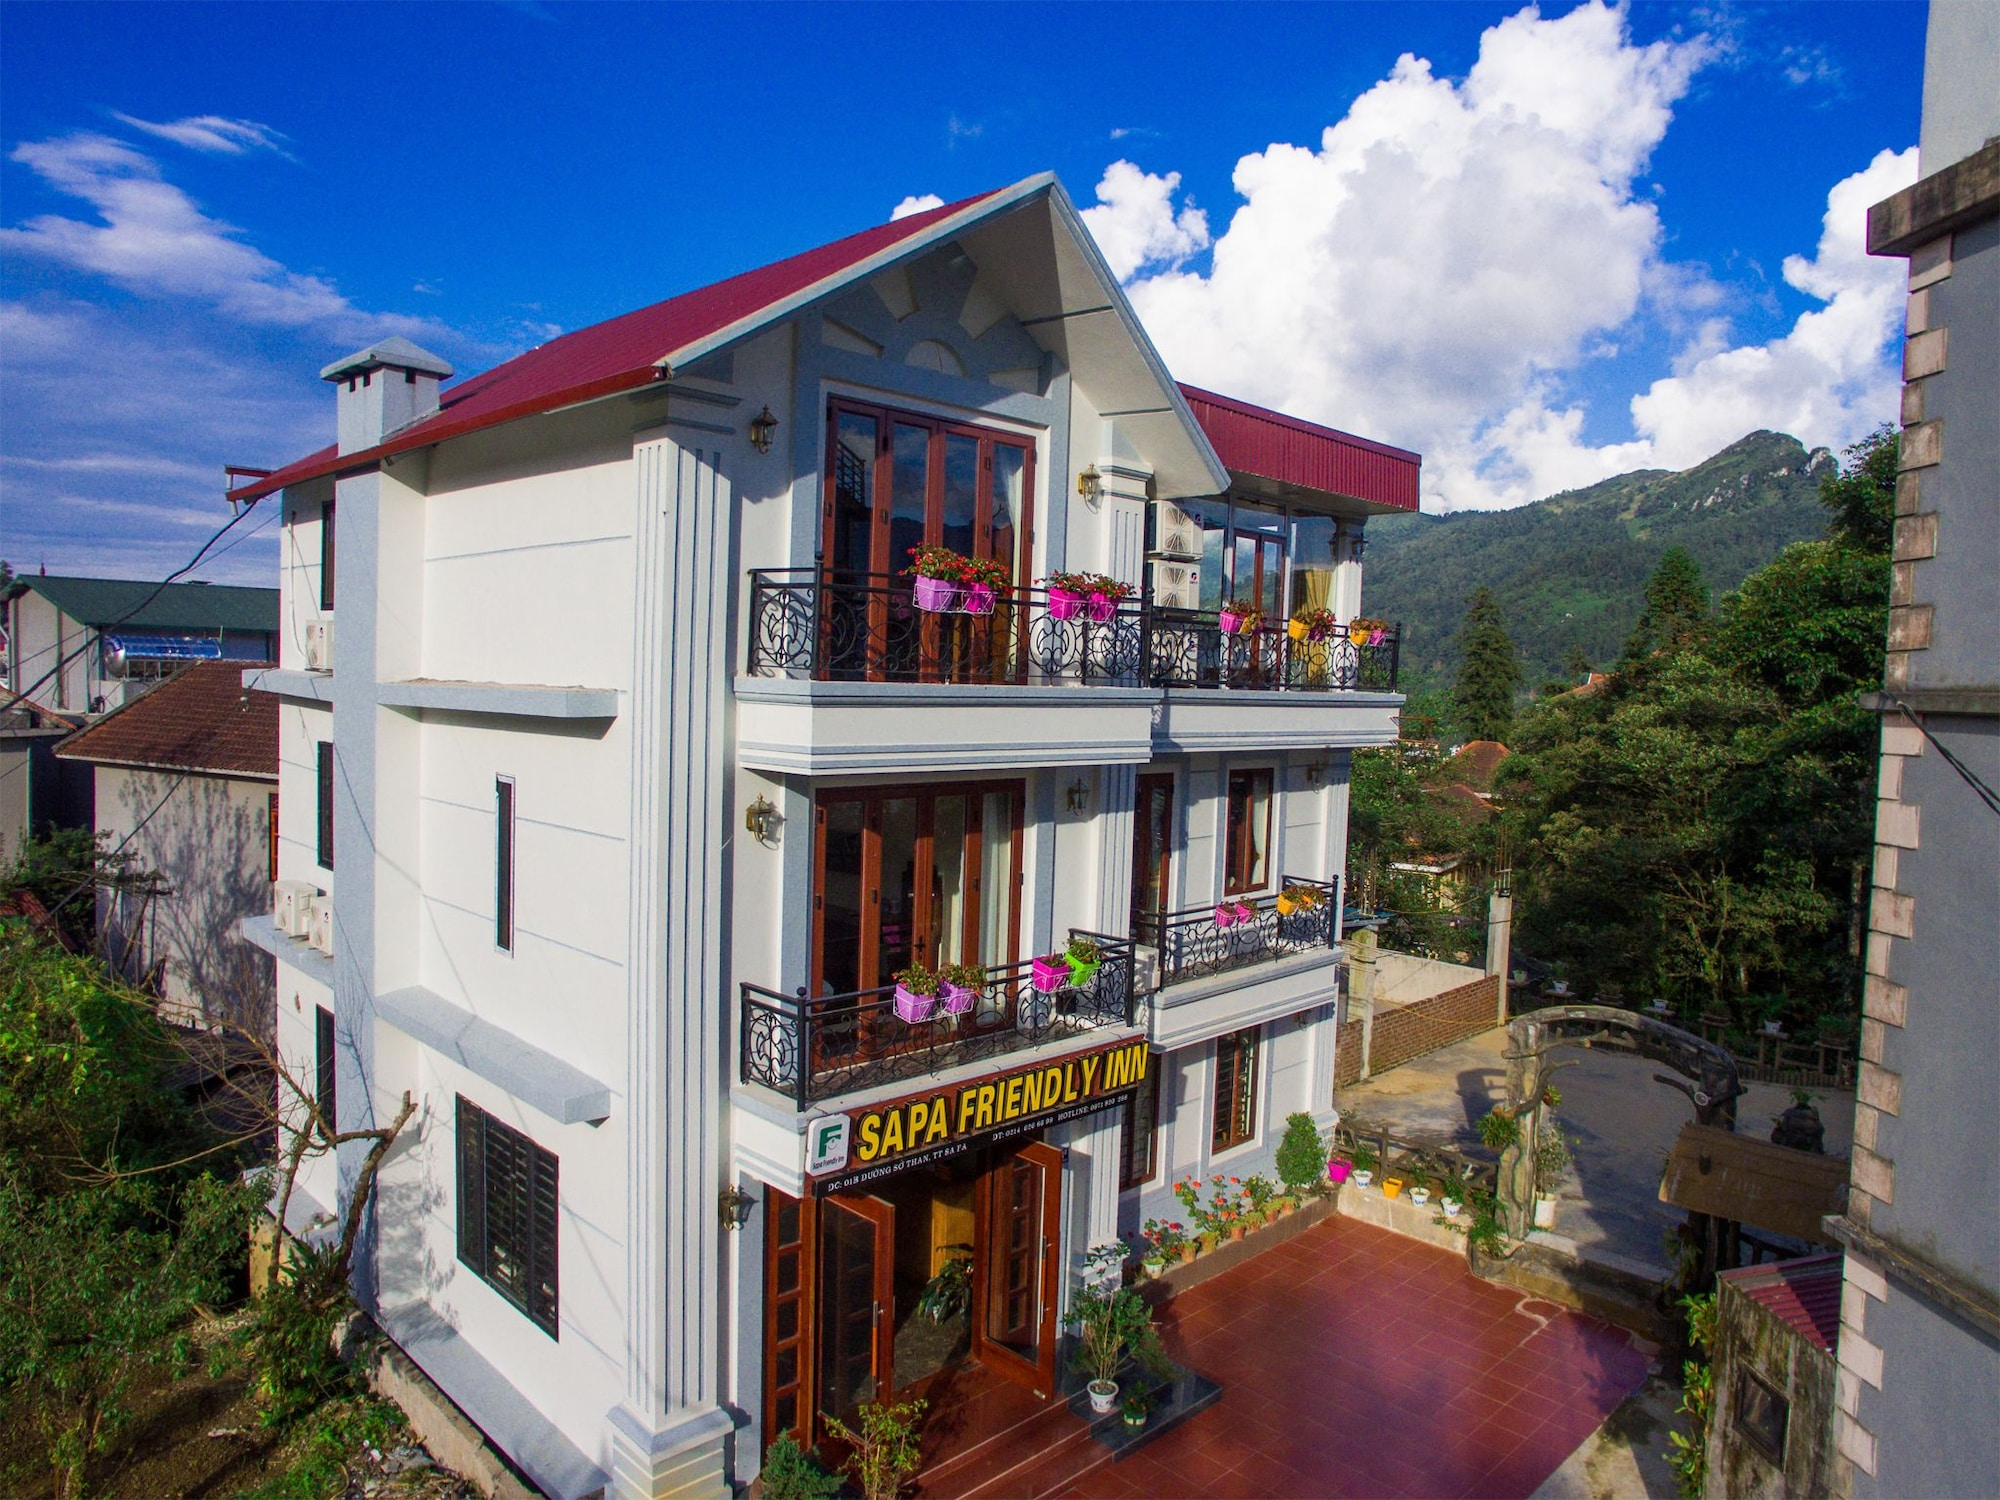 Sapa Friendly Inn & Travel, Sa Pa